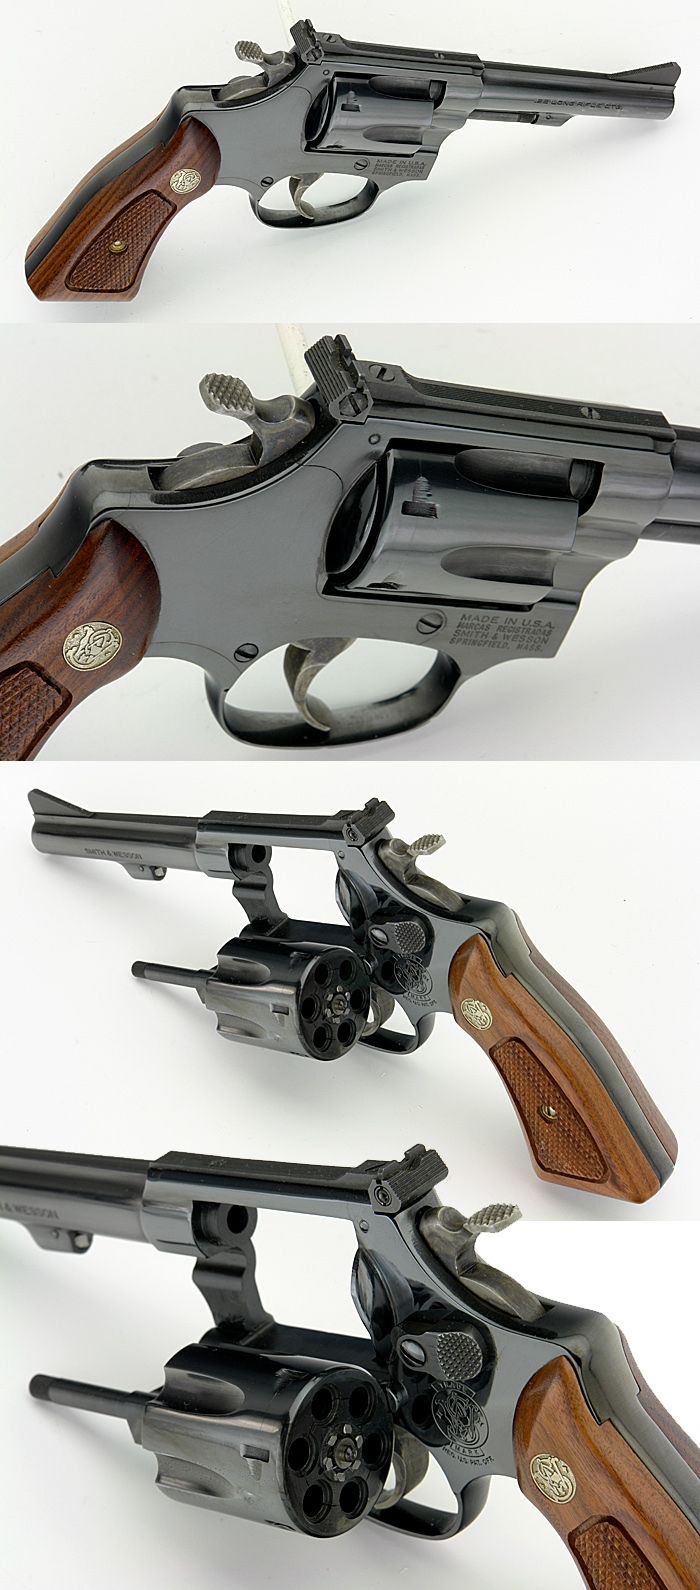 SMITH & WESSON S&W - MODEL 34-2 REVOLVER .22 LONG RIFLE 4 INCH BARREL - Picture 2